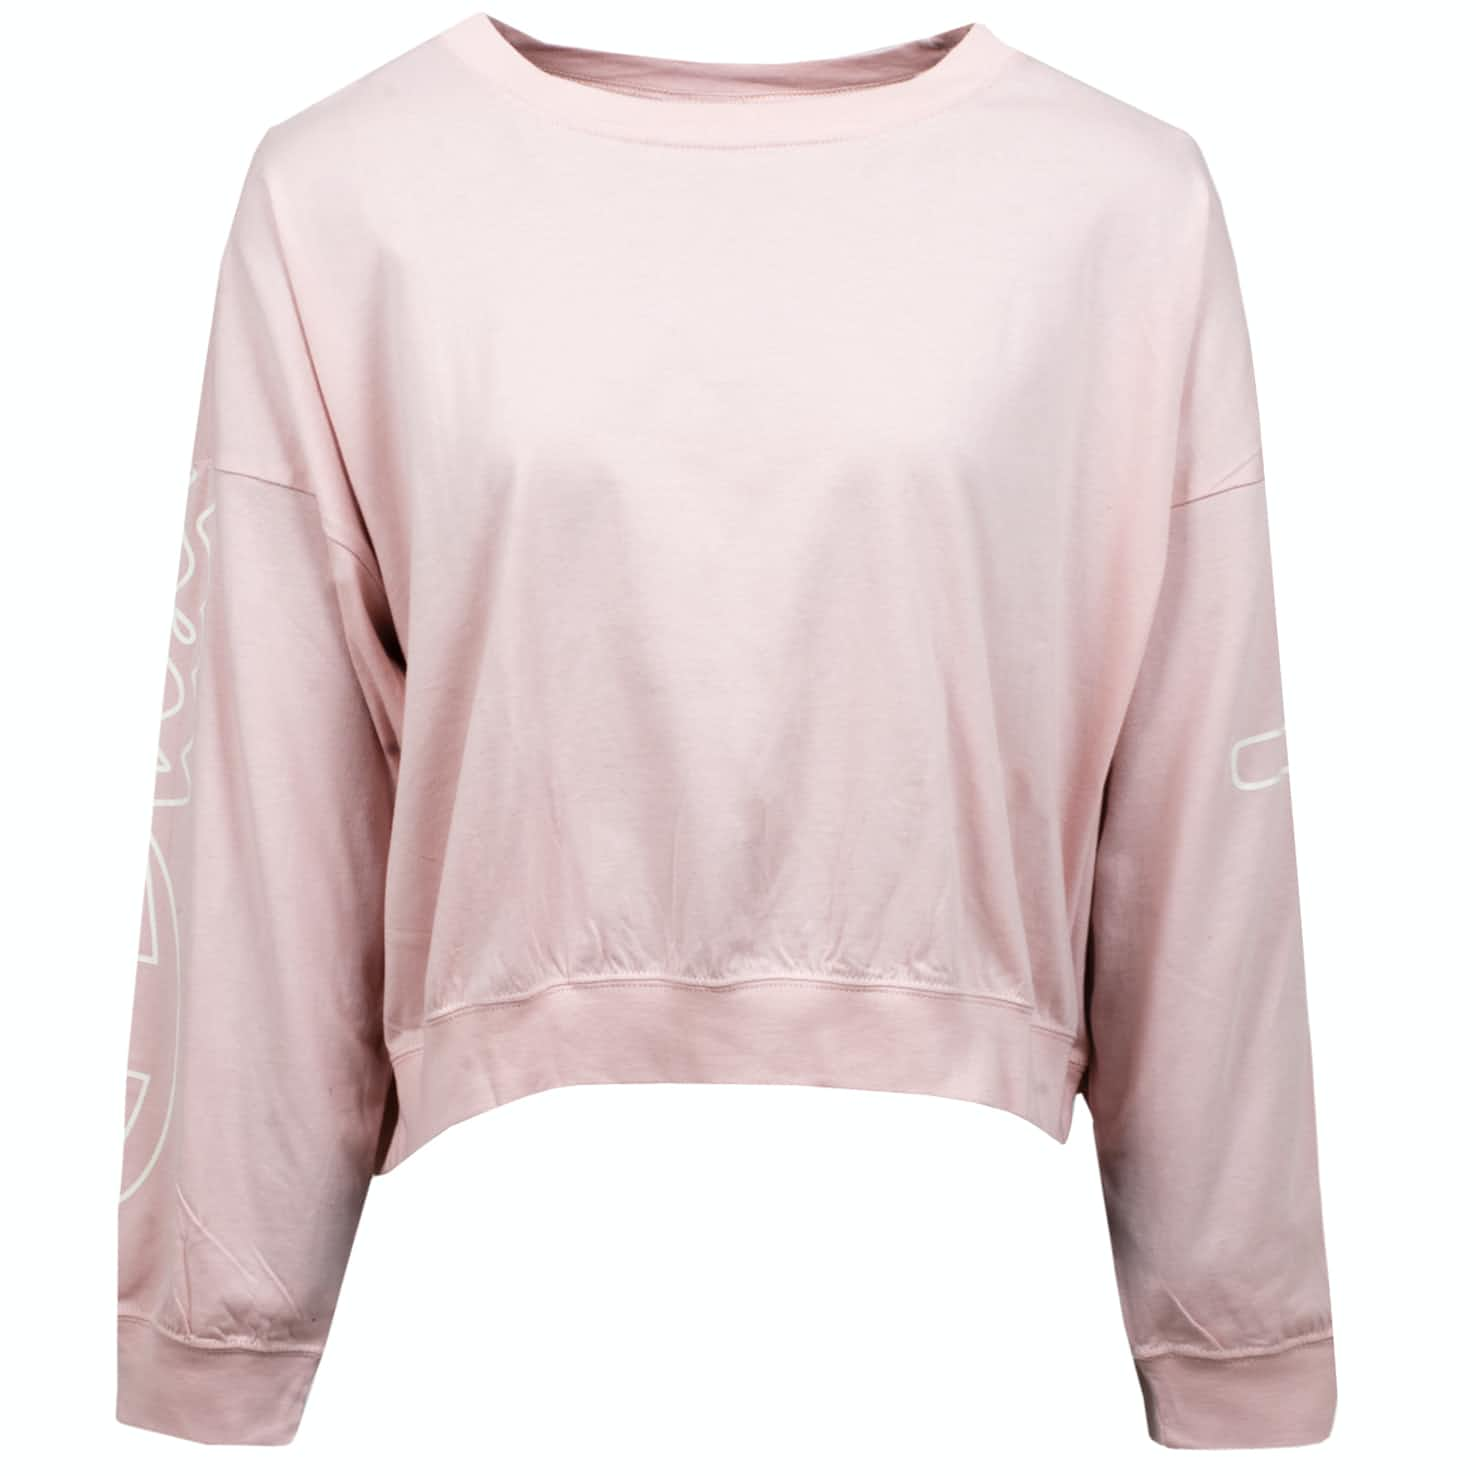 Womens LS Crew Neck Sweatshirt Light Pink